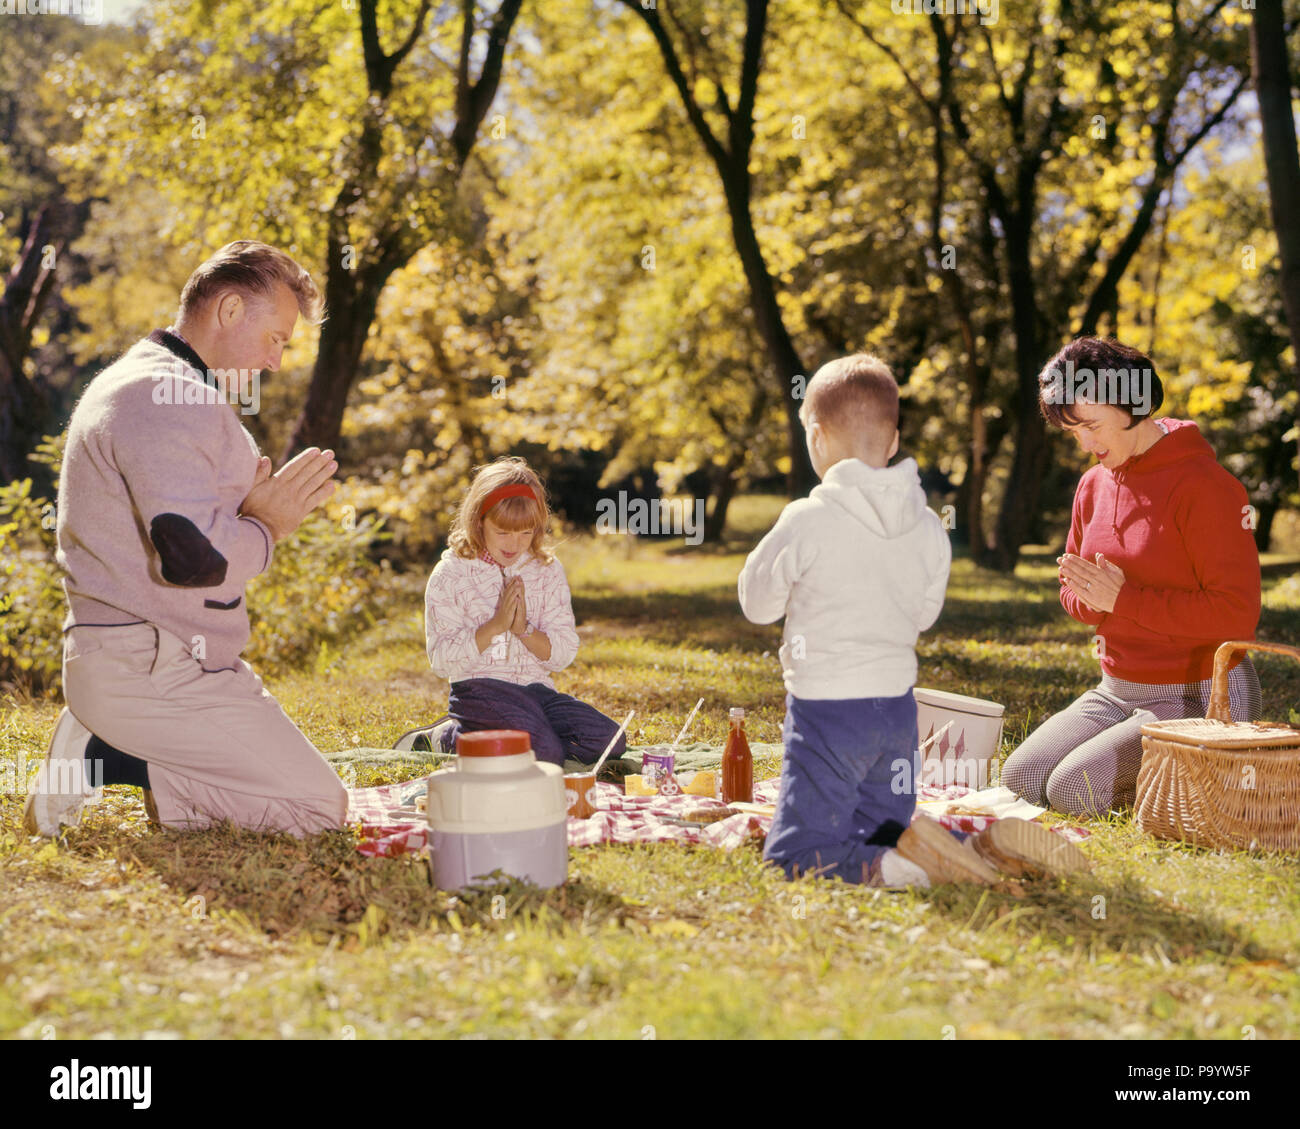 1960s FAMILY KNEELING AROUND PICNIC IN GRASS AUTUMN DAY